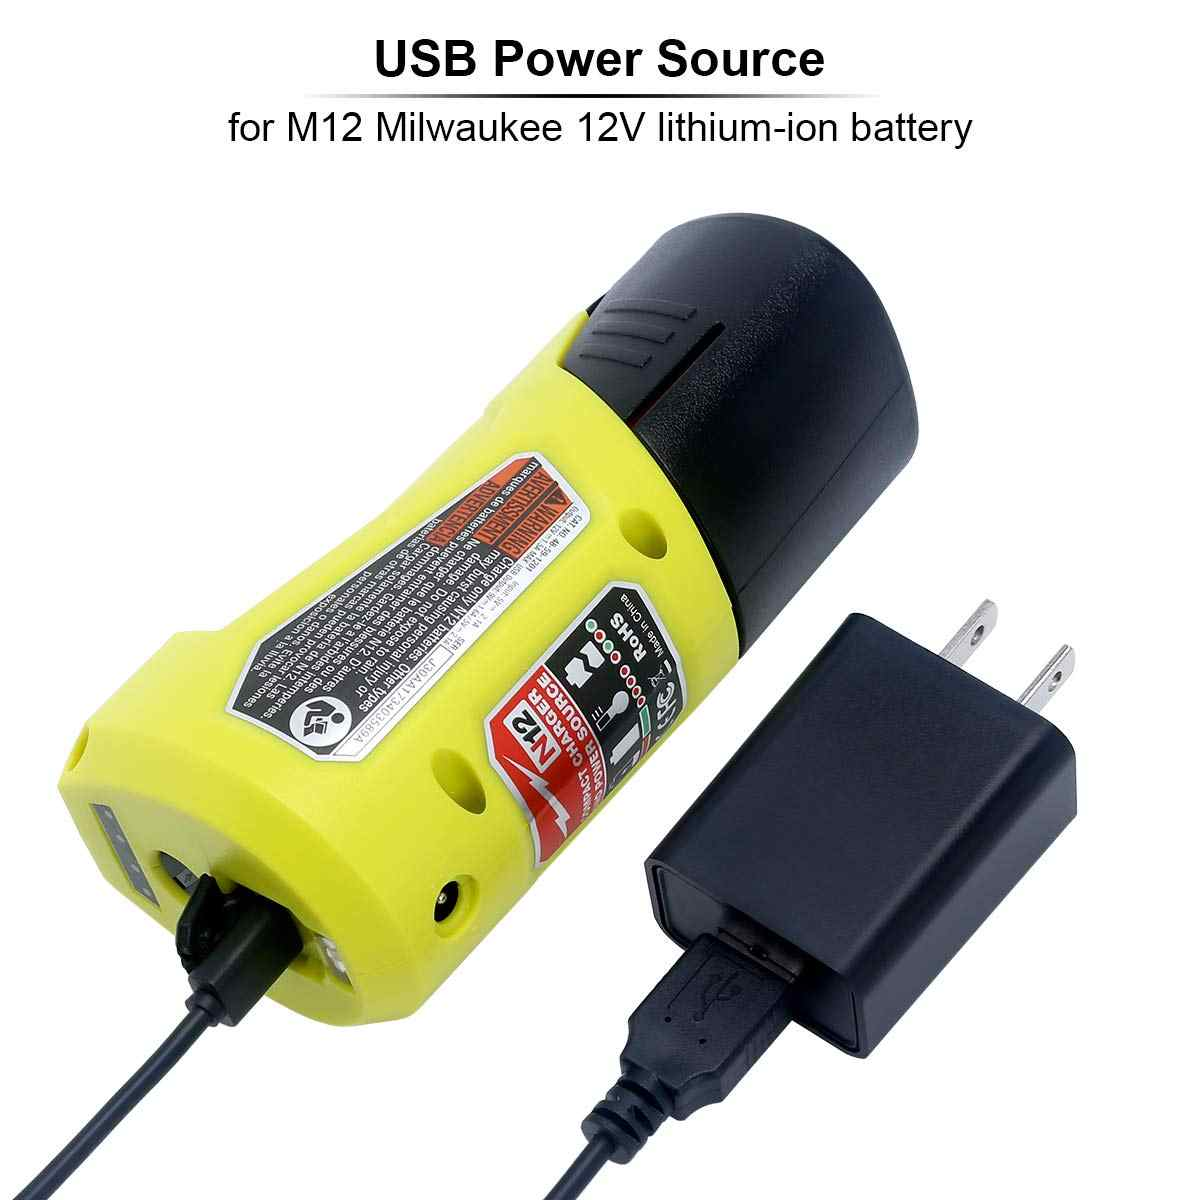 M12 Charger and Portable Power Source for 48-59-1201 Replacemenet Power Tool